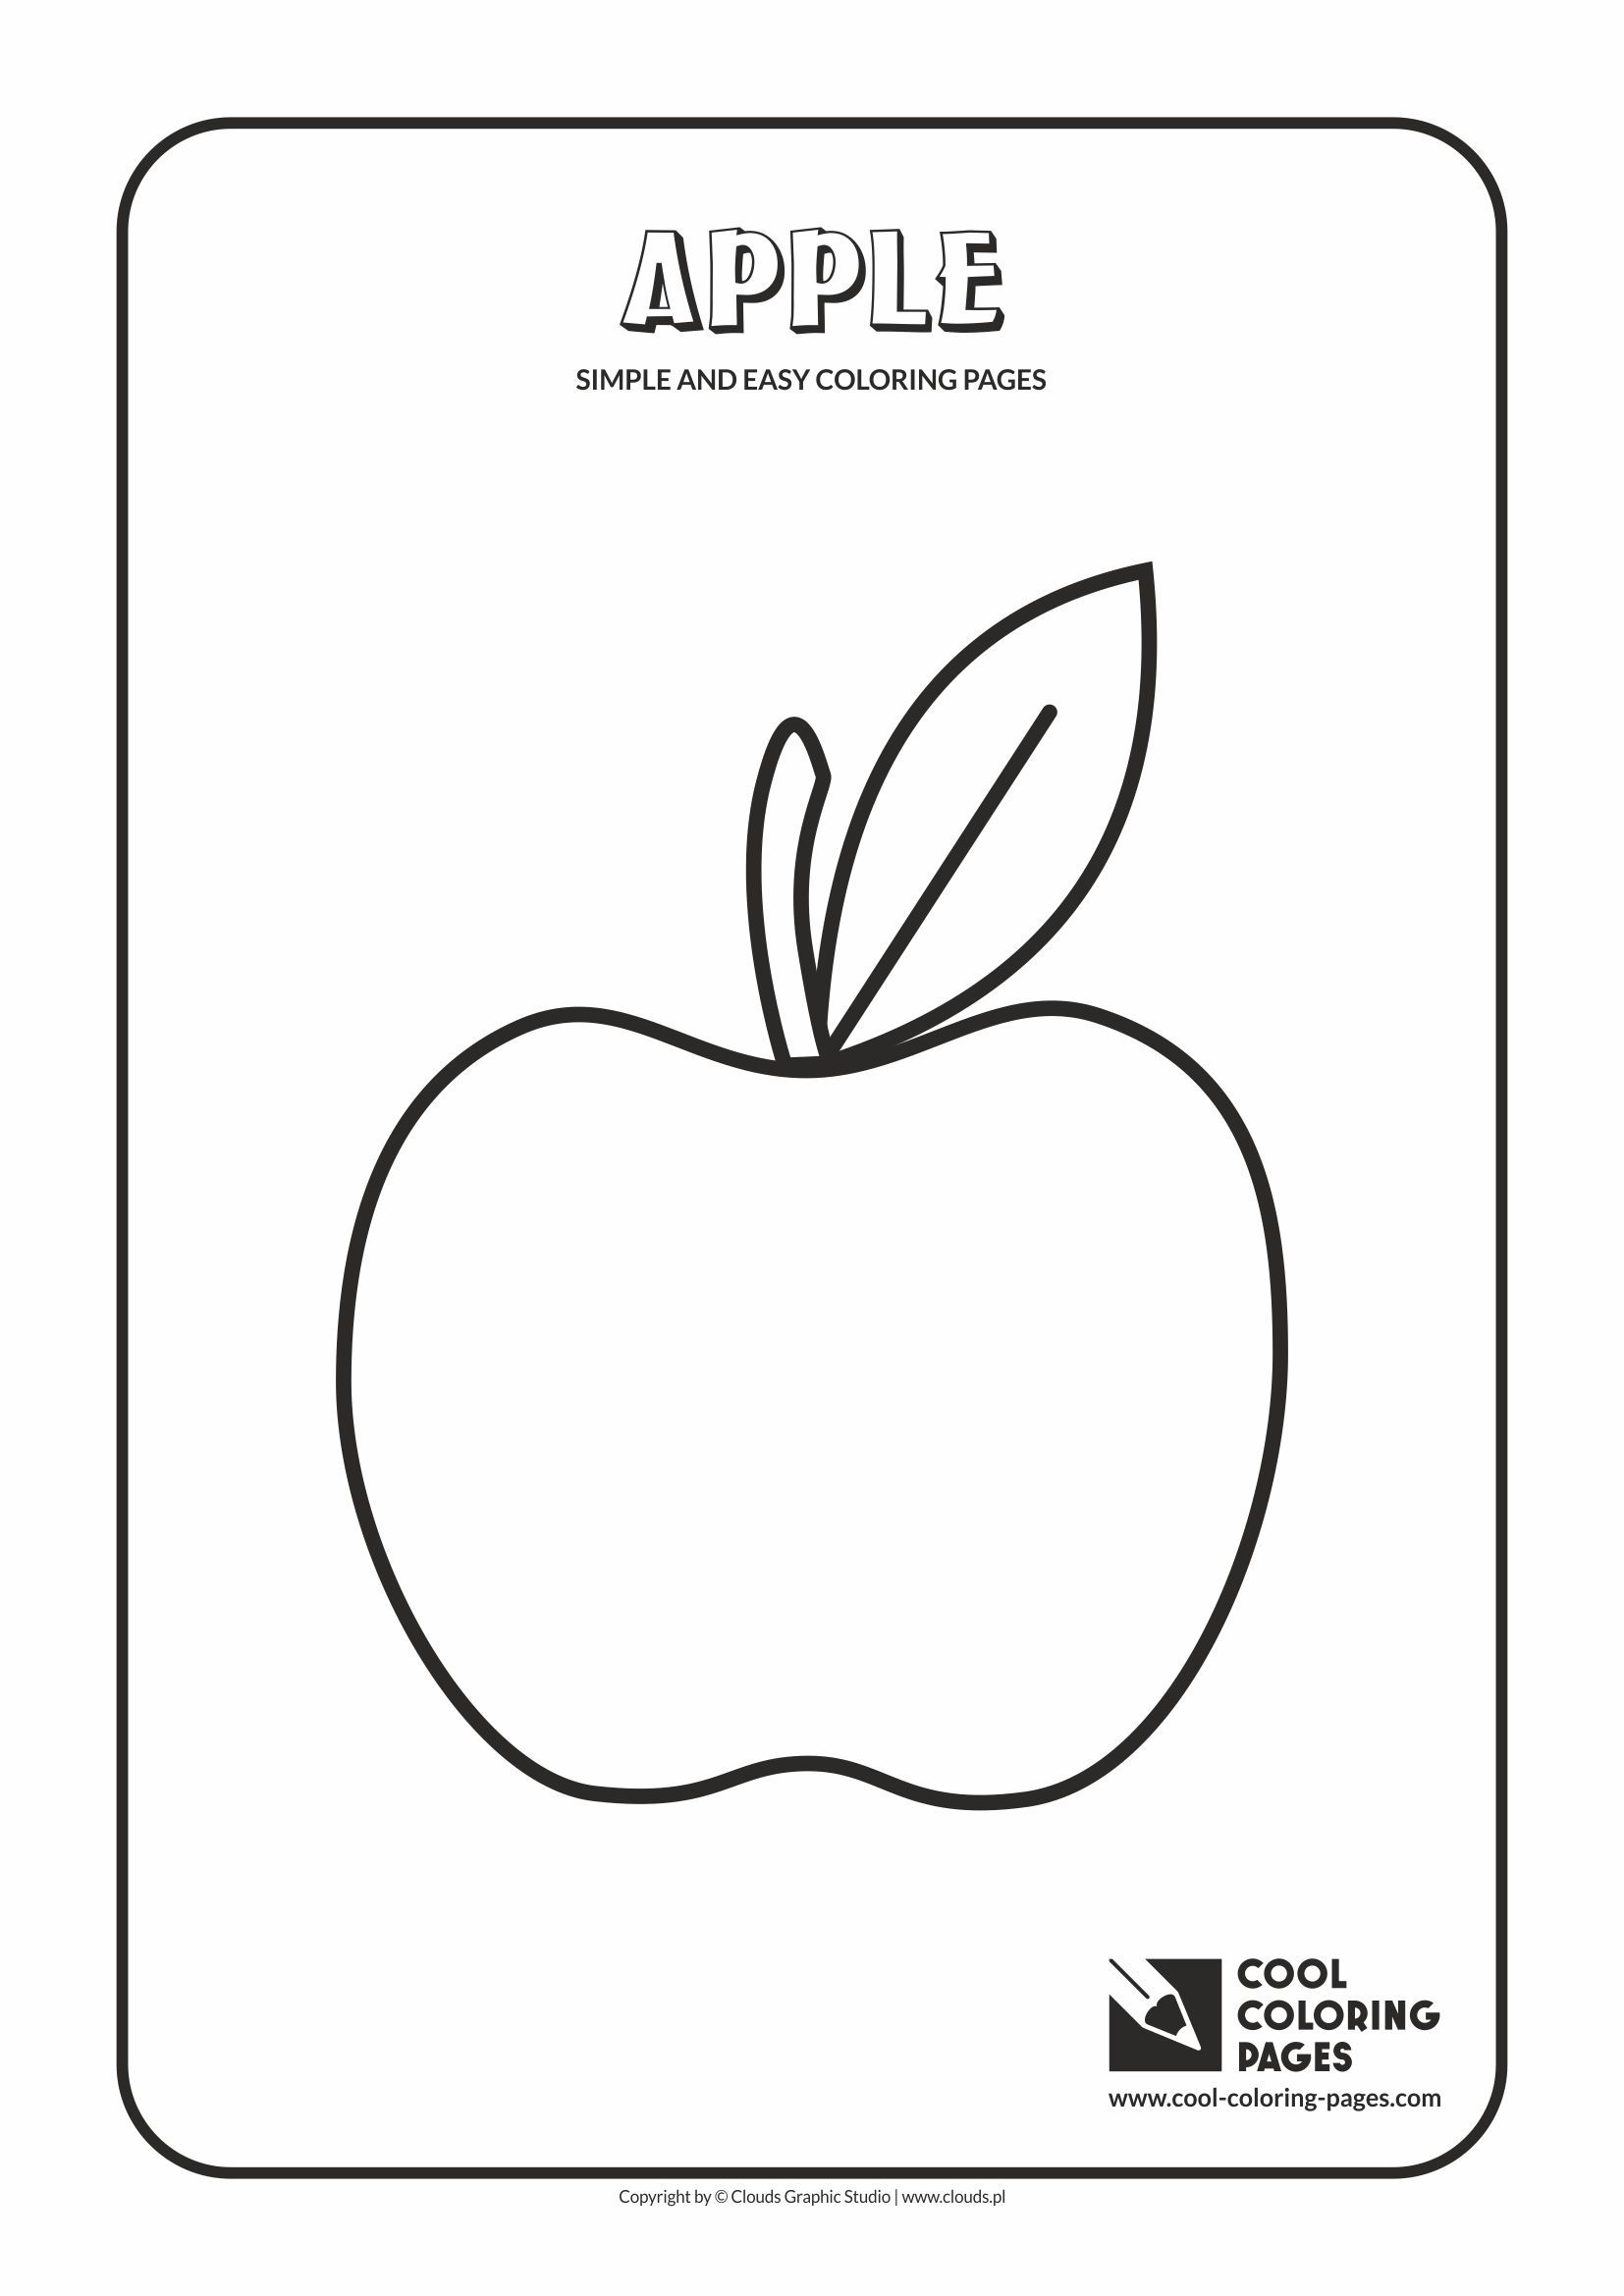 simple and easy coloring pages for toddlers apple simple and